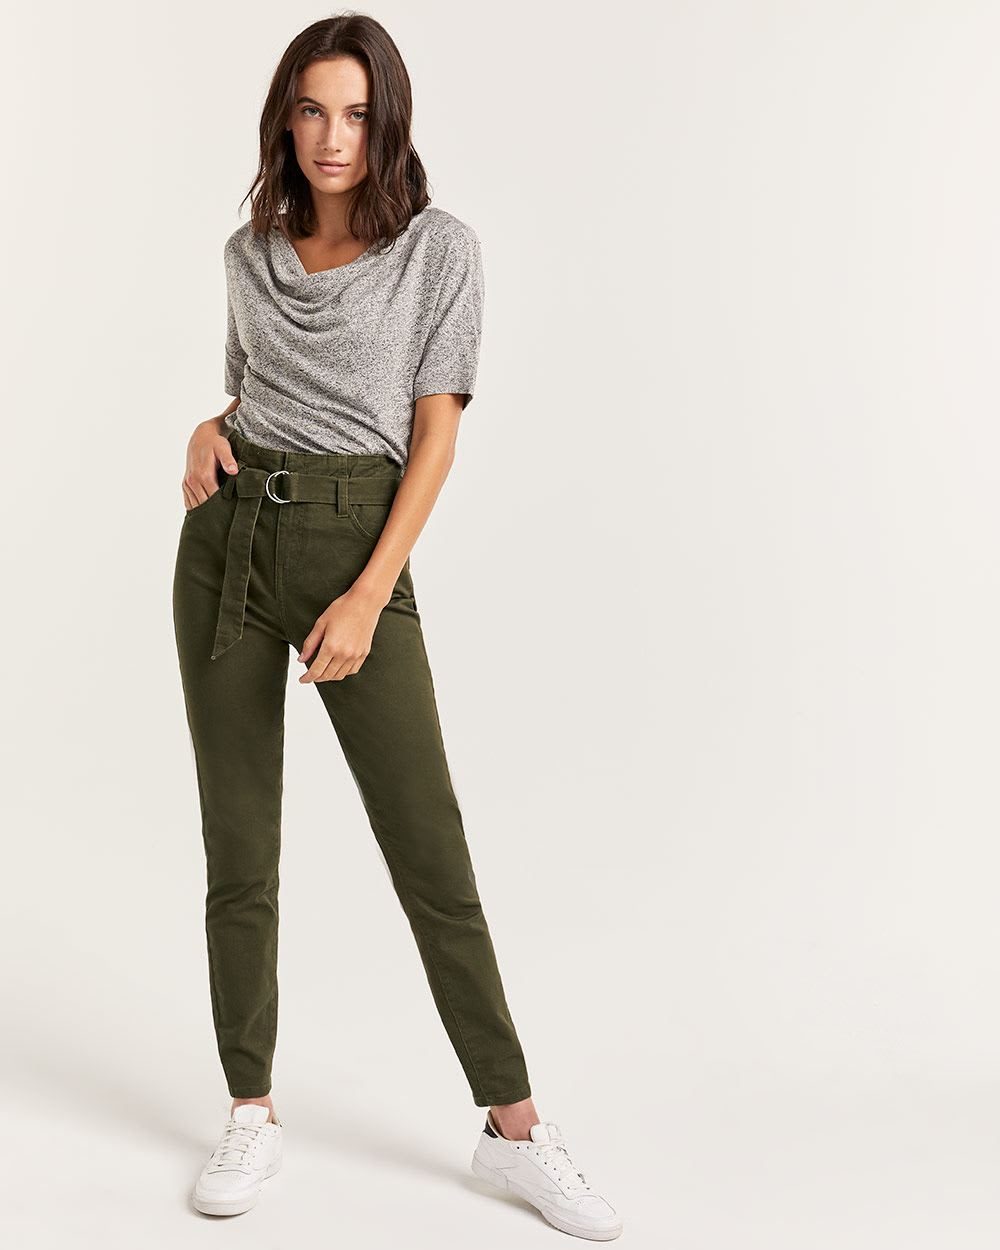 Belted Paperbag Waist High Rise Skinny Jeans